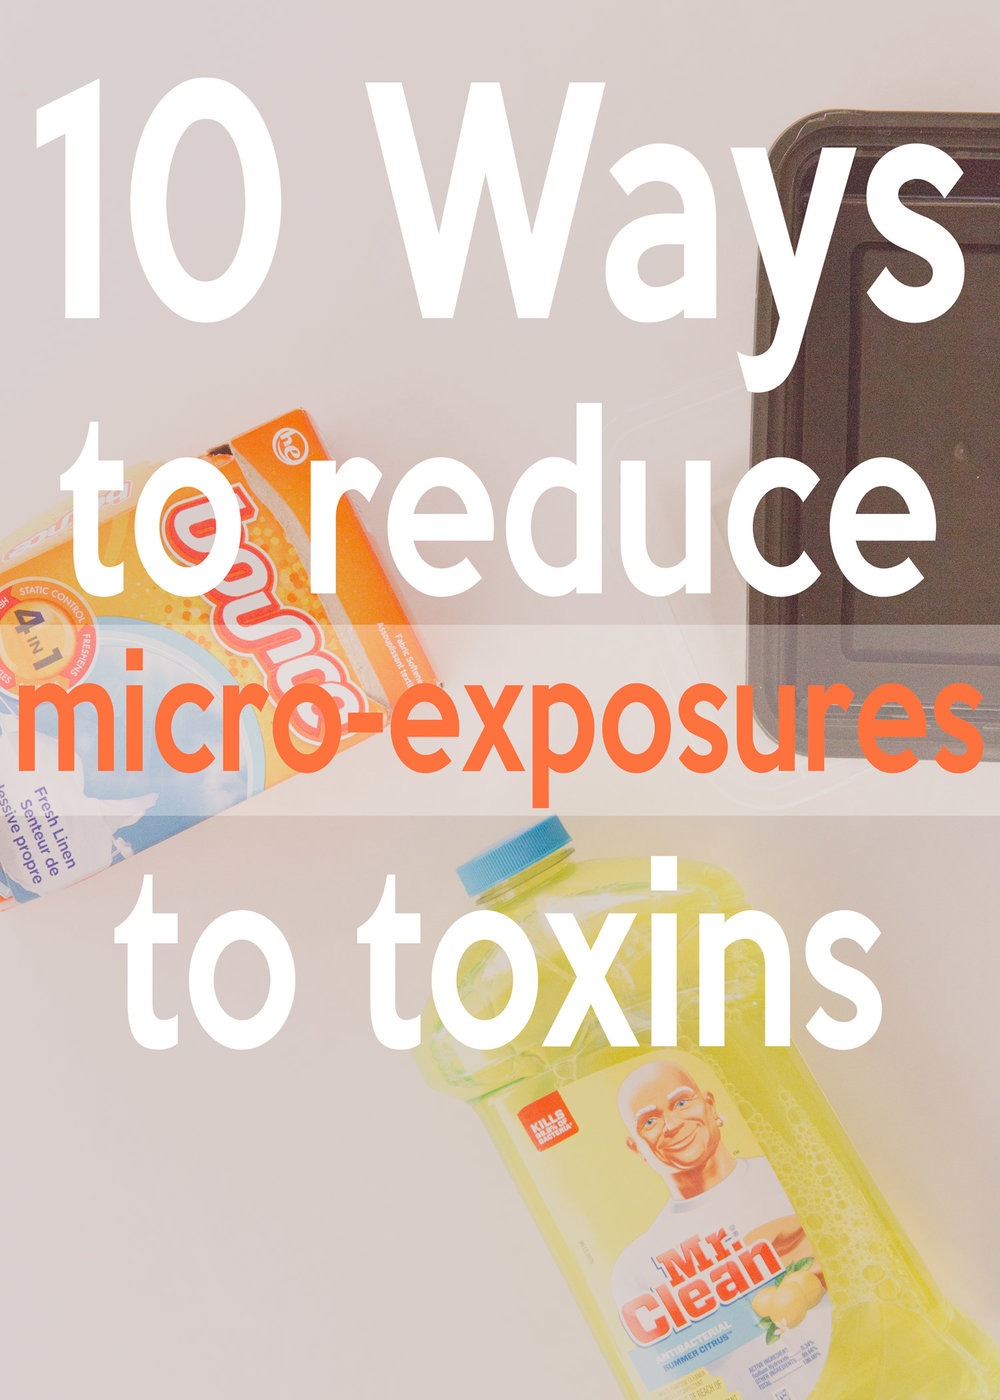 Pin now  for easy reference later. 10 Ways to reduce micro-exposures to toxins.